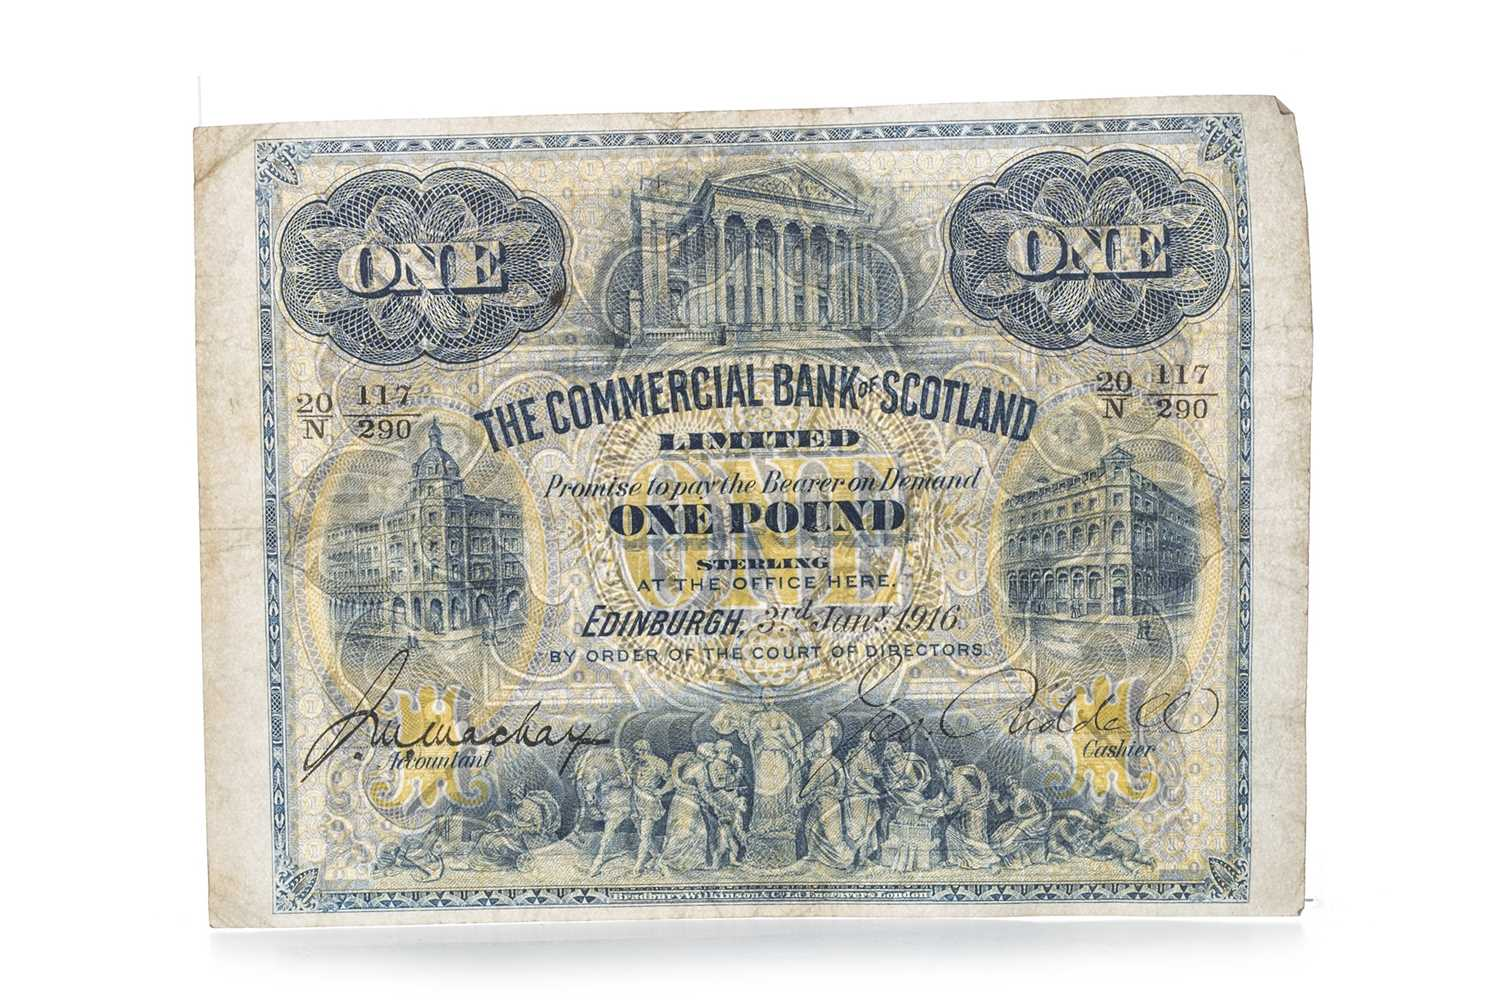 Lot 8-THE COMMERCIAL BANK OF SCOTLAND ONE POUND £1 NOTE